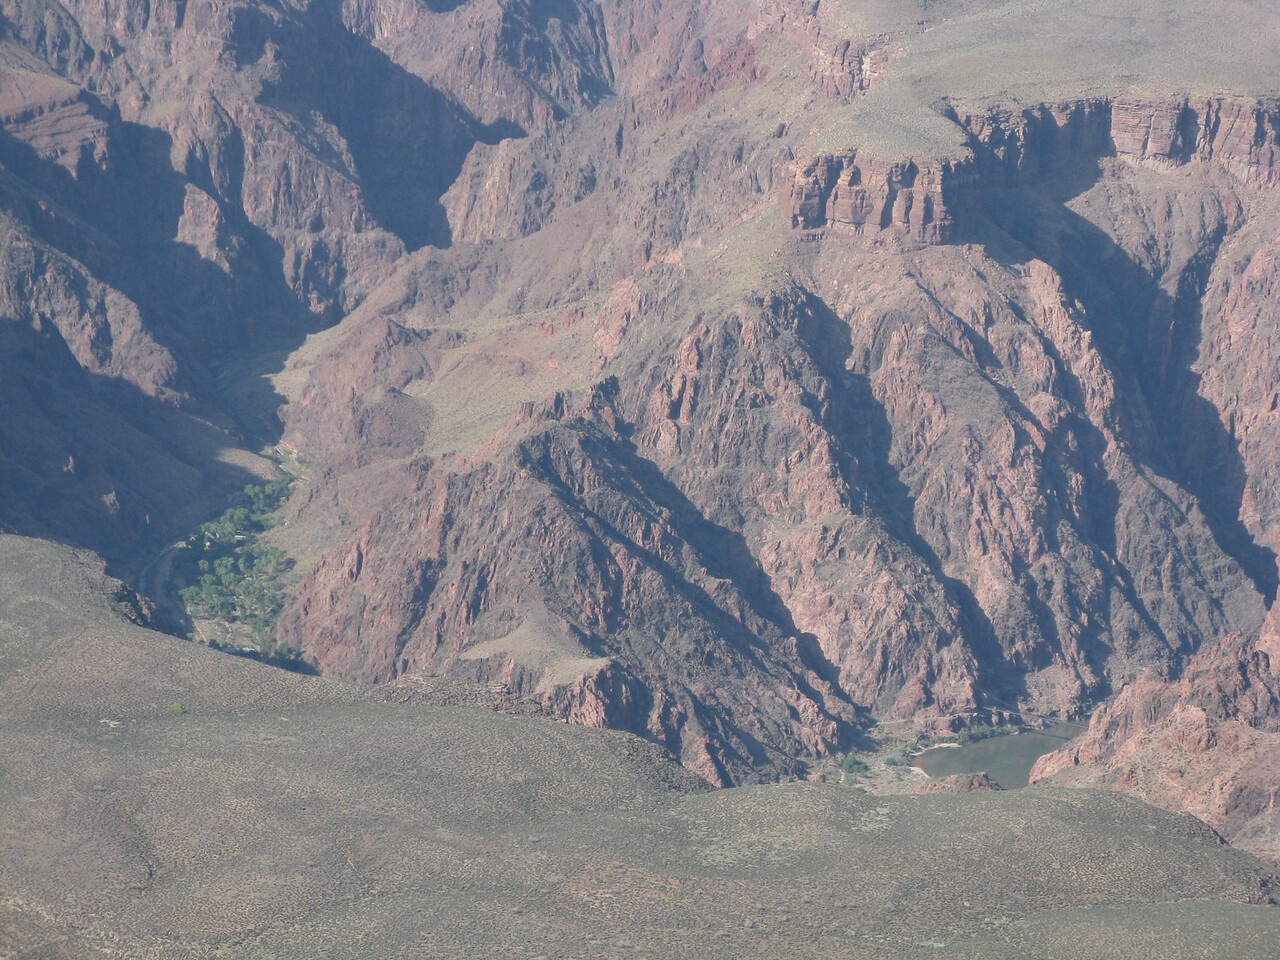 The Colorado River is seen in the right lower side of the picture.  Enlarge the picture a few times, and the Black Bridge, with the trail approaching it, becomes visible above the river.  On the left side of the picture is Phantom Ranch.  The green cottonwood trees are a distinct contrast to the rest of the arid landscape.